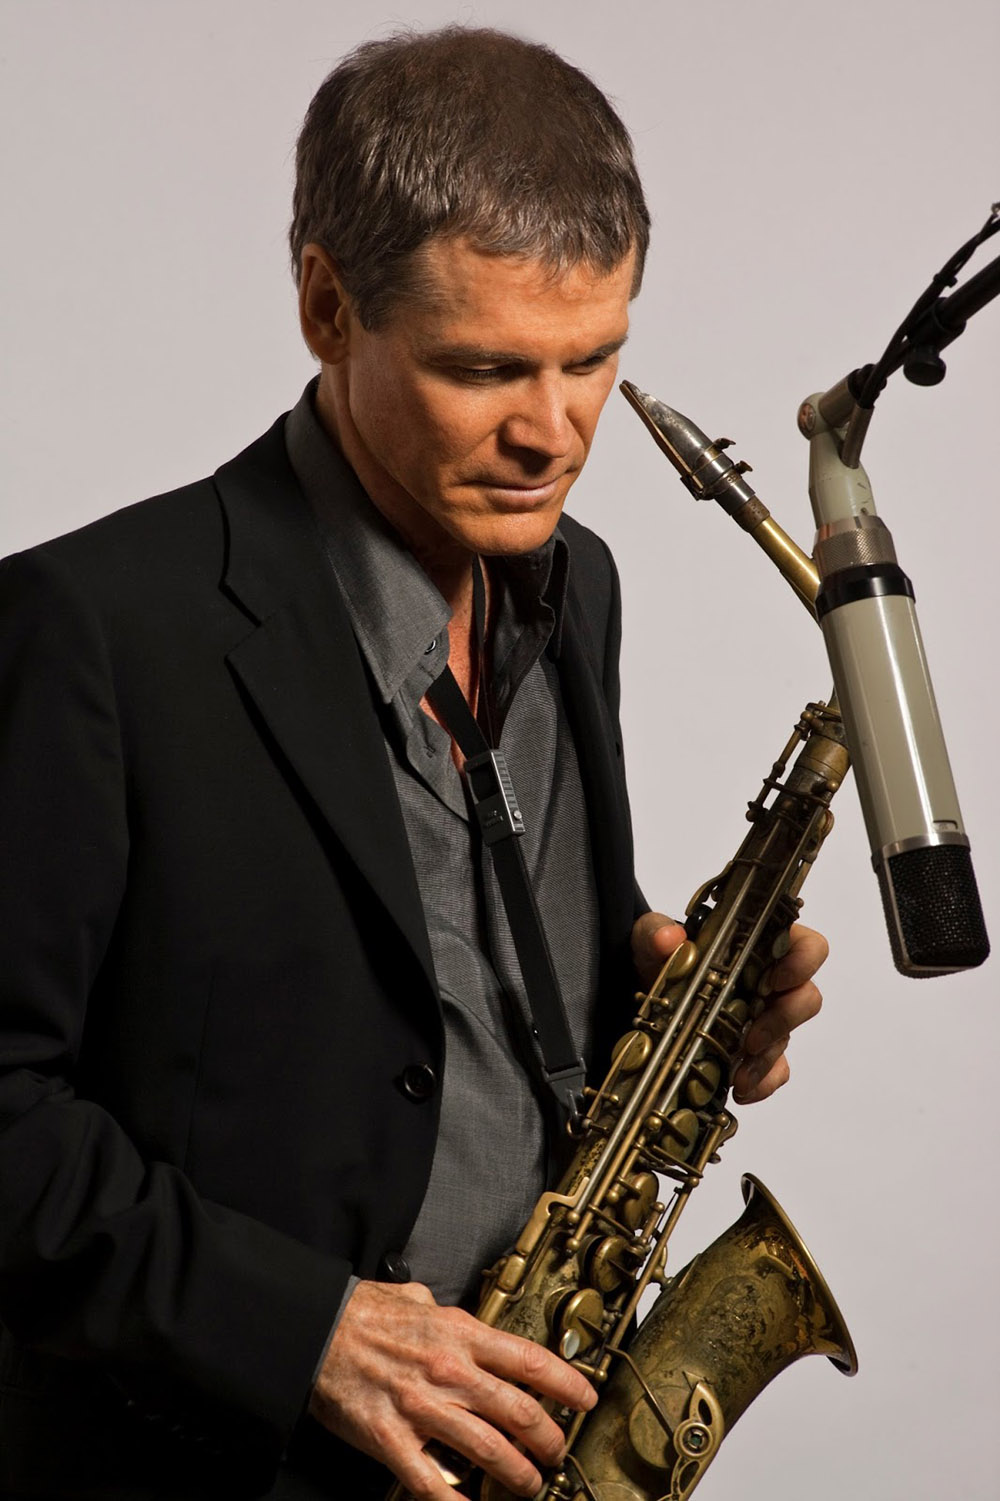 David Sanborn Trio featuring Joey DeFrancesco and Steve Gadd